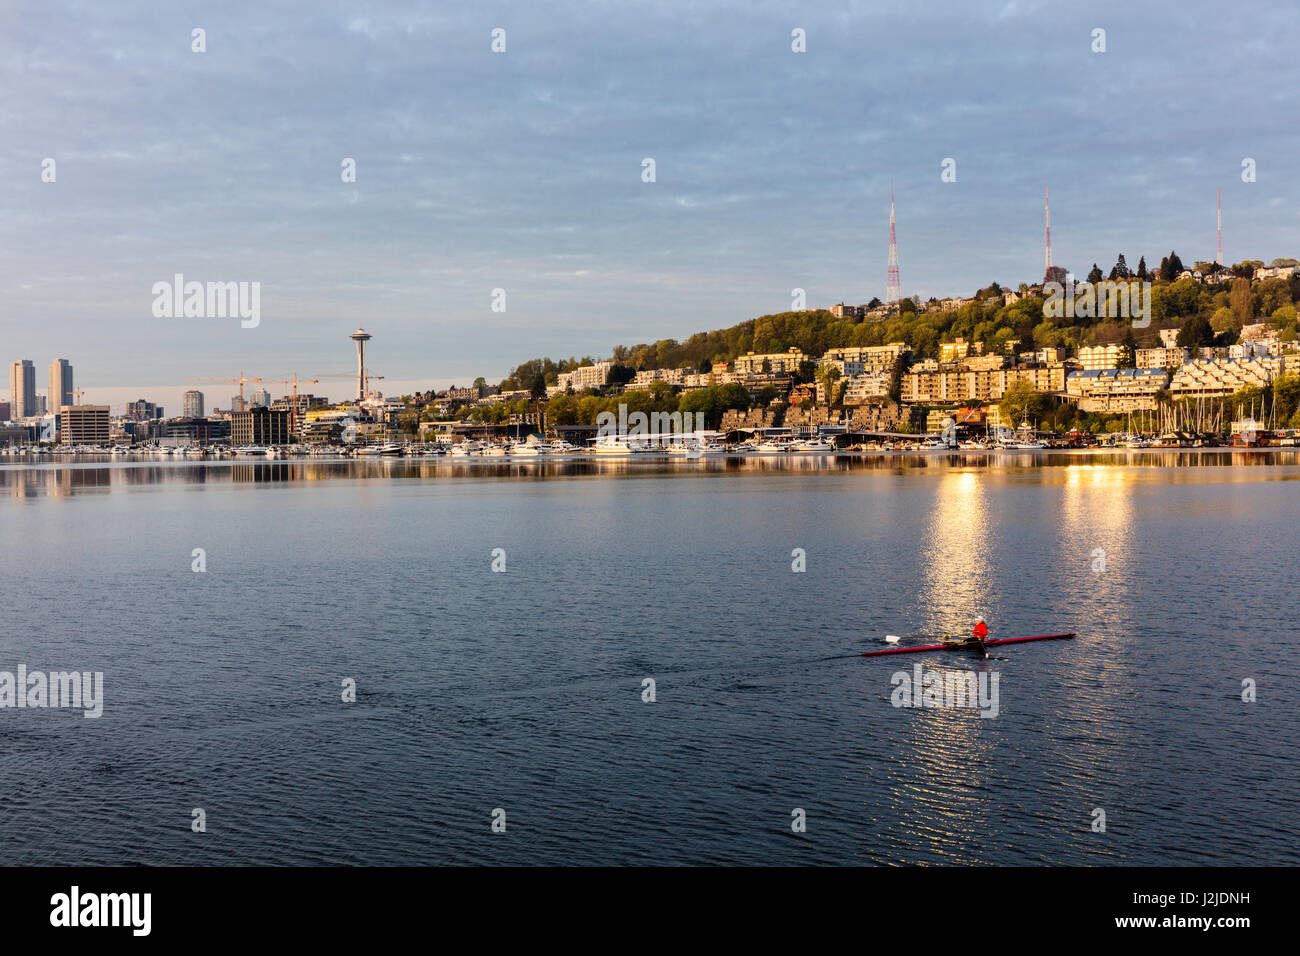 Morning rowing in Lake Union in Seattle, Washington State, USA (Large format sizes available) - Stock Image